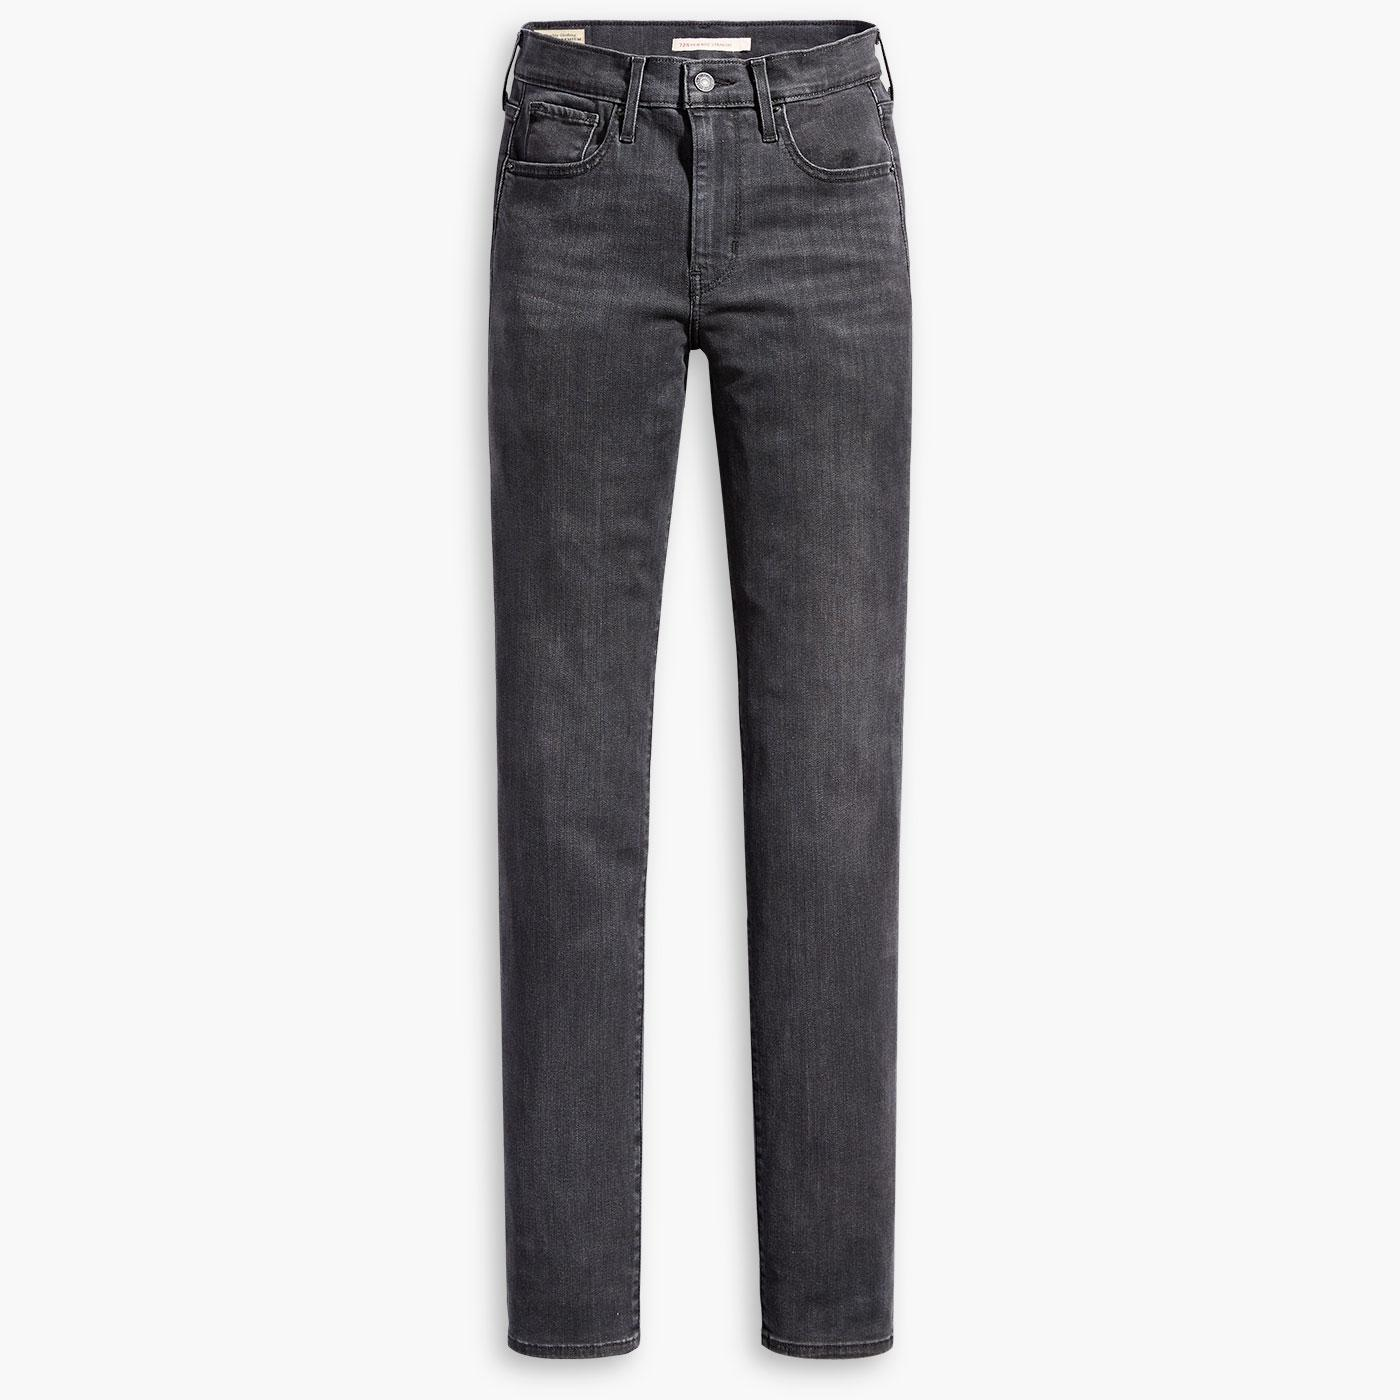 LEVI'S 724 High Rise Straight Jeans in Black Hail